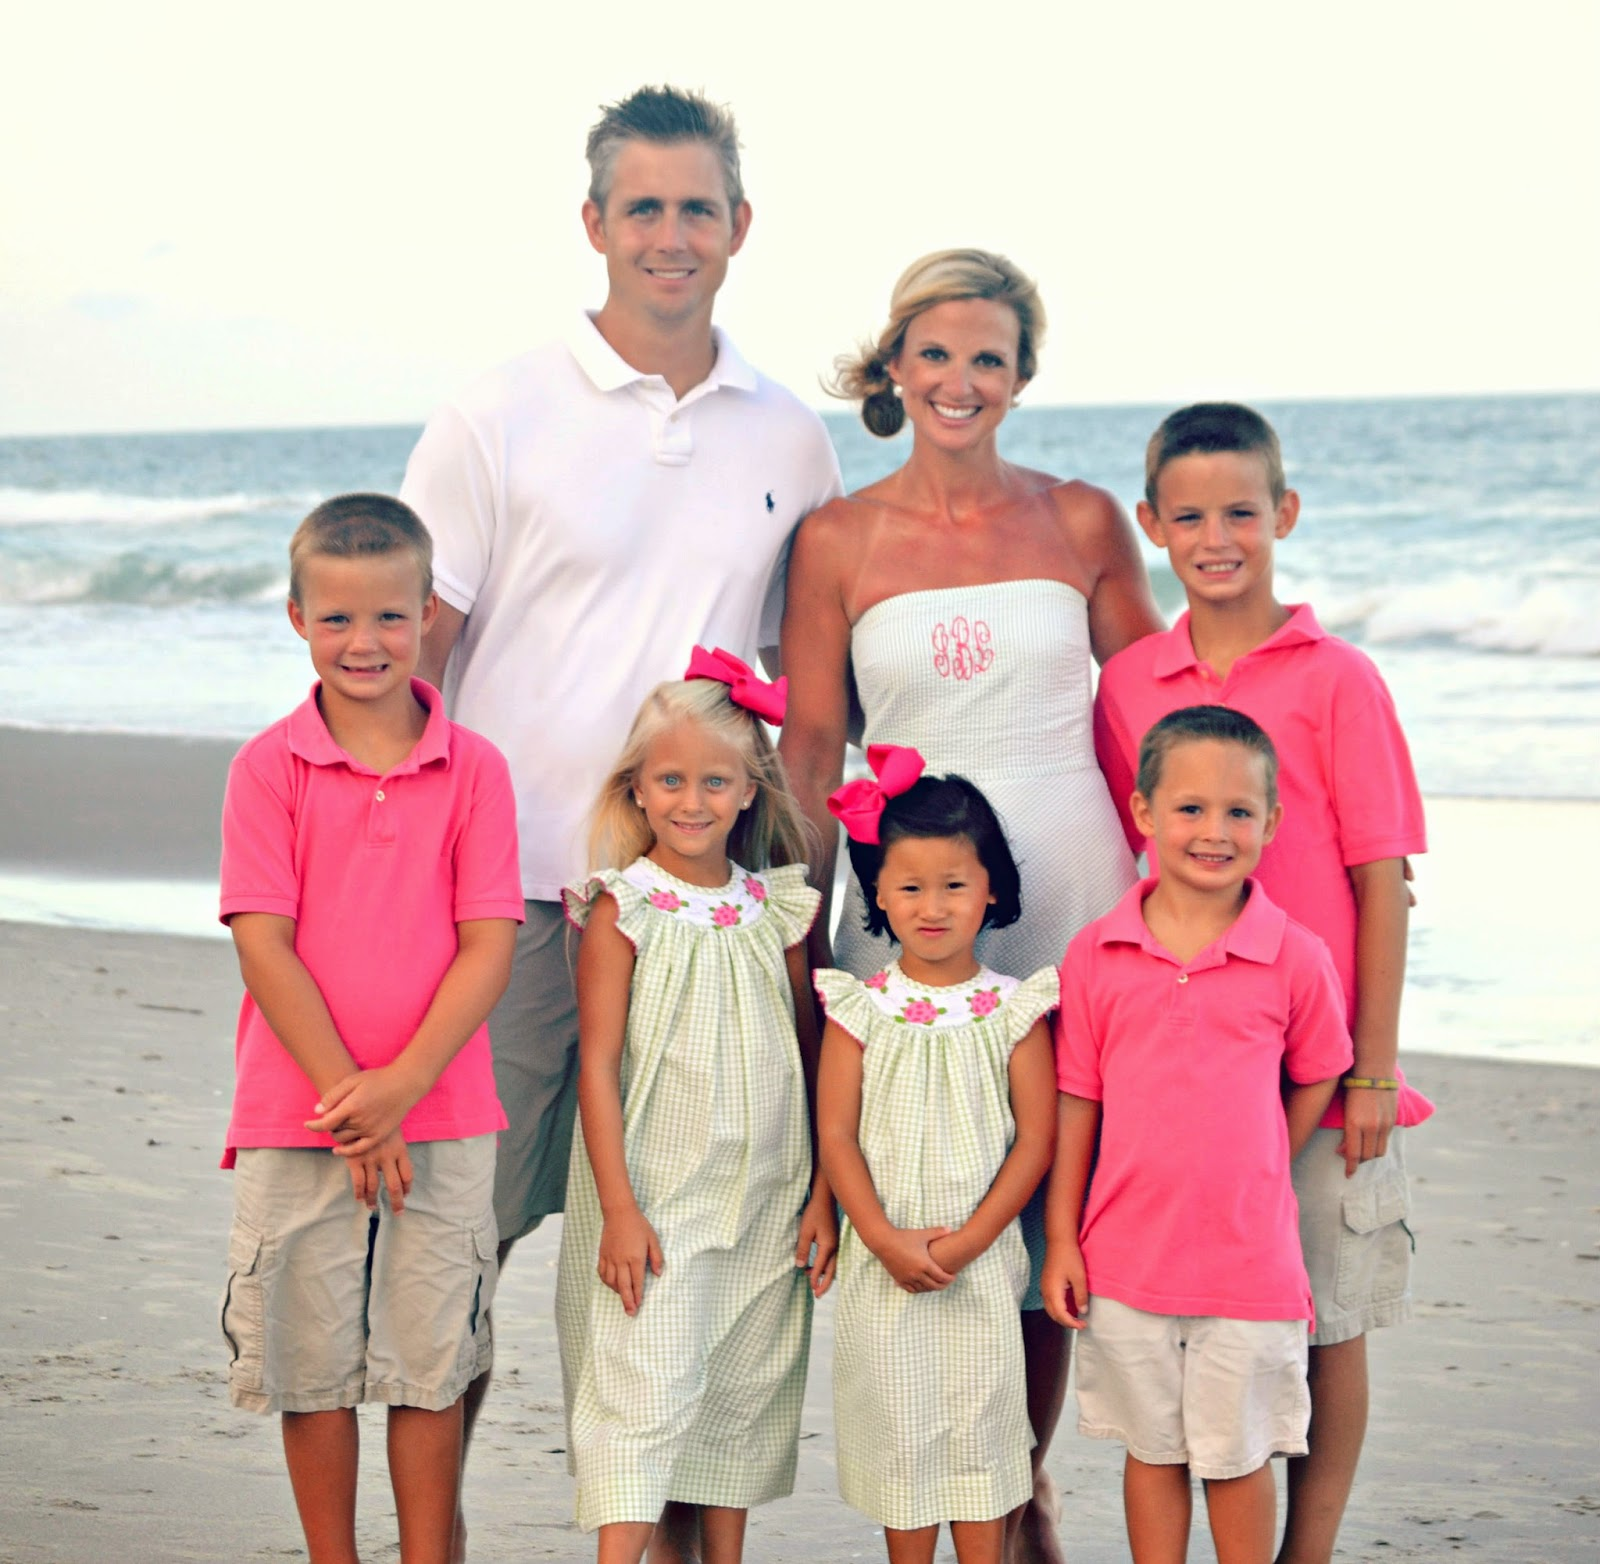 Family Pictures In The Beach: Beyond Our Wildest Dreams: Family Beach Pictures